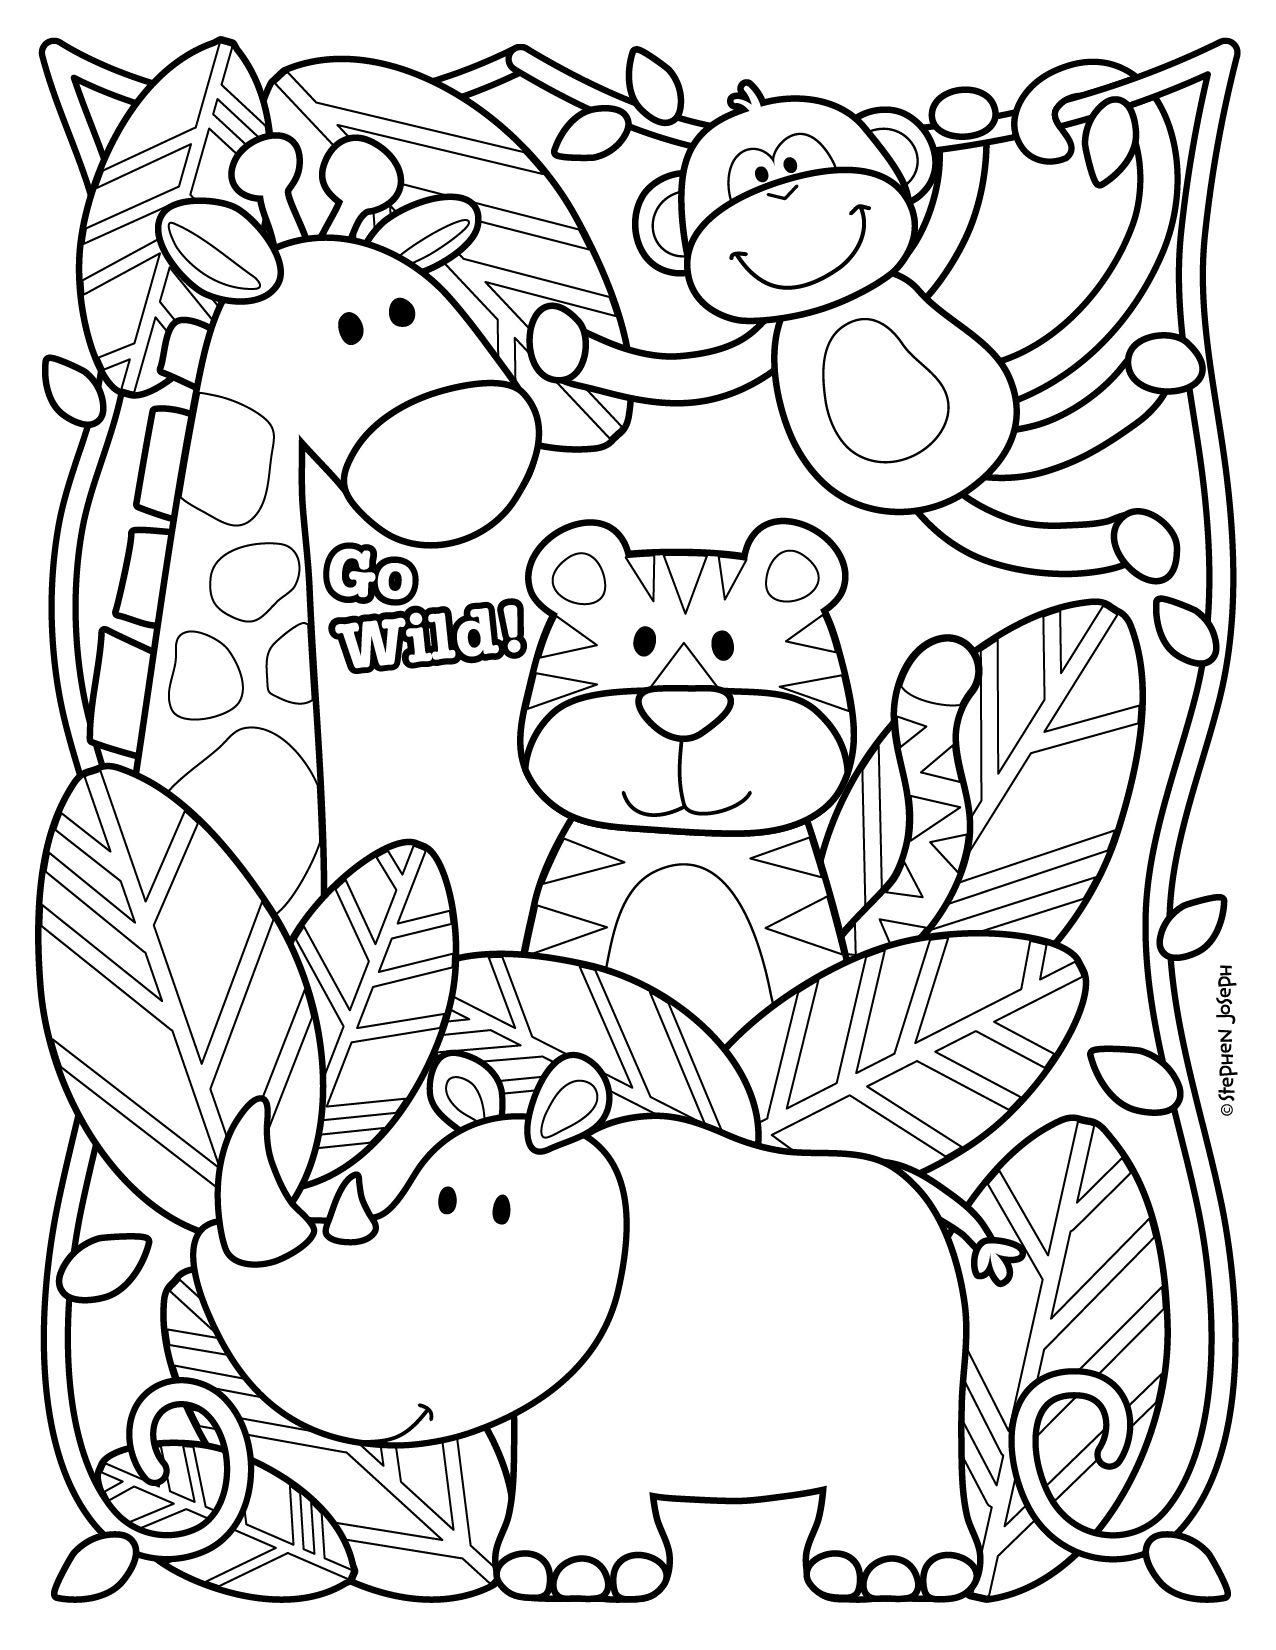 zoo animal coloring pages for preschool we love being moms a z zoo animal coloring pages zoo animal coloring preschool for pages